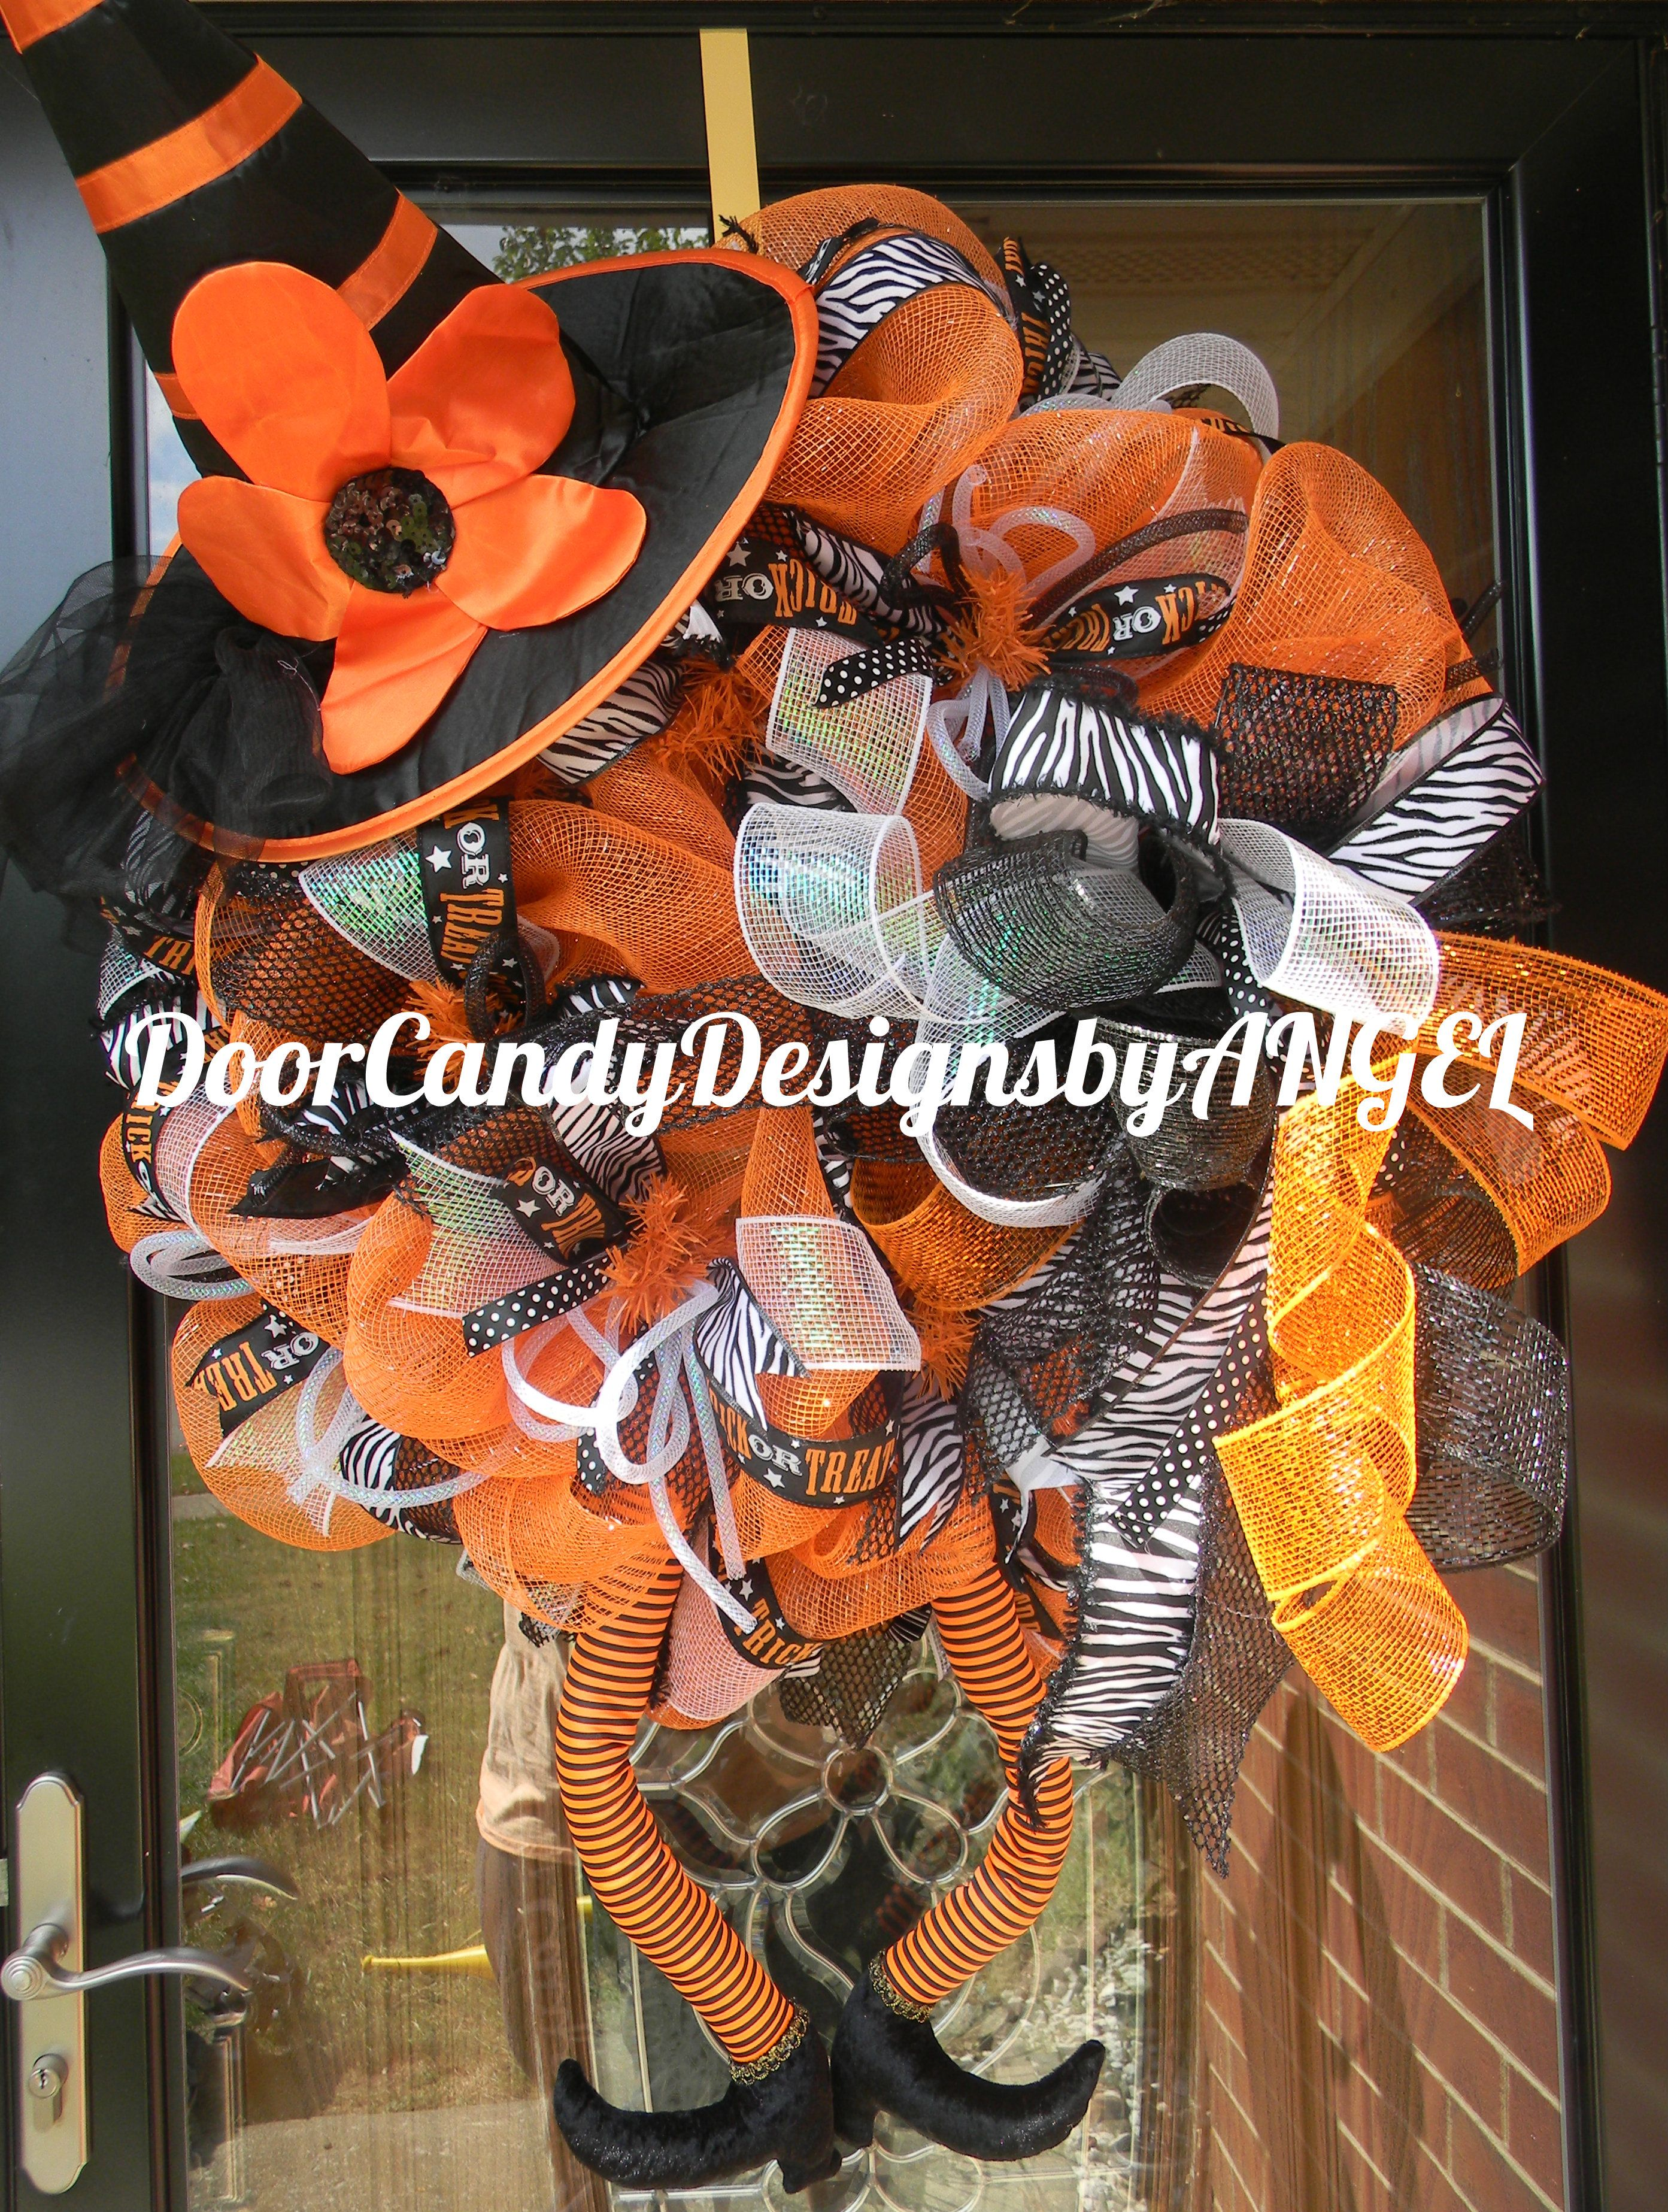 Trick or Treat Witch Design (With images) Door candy